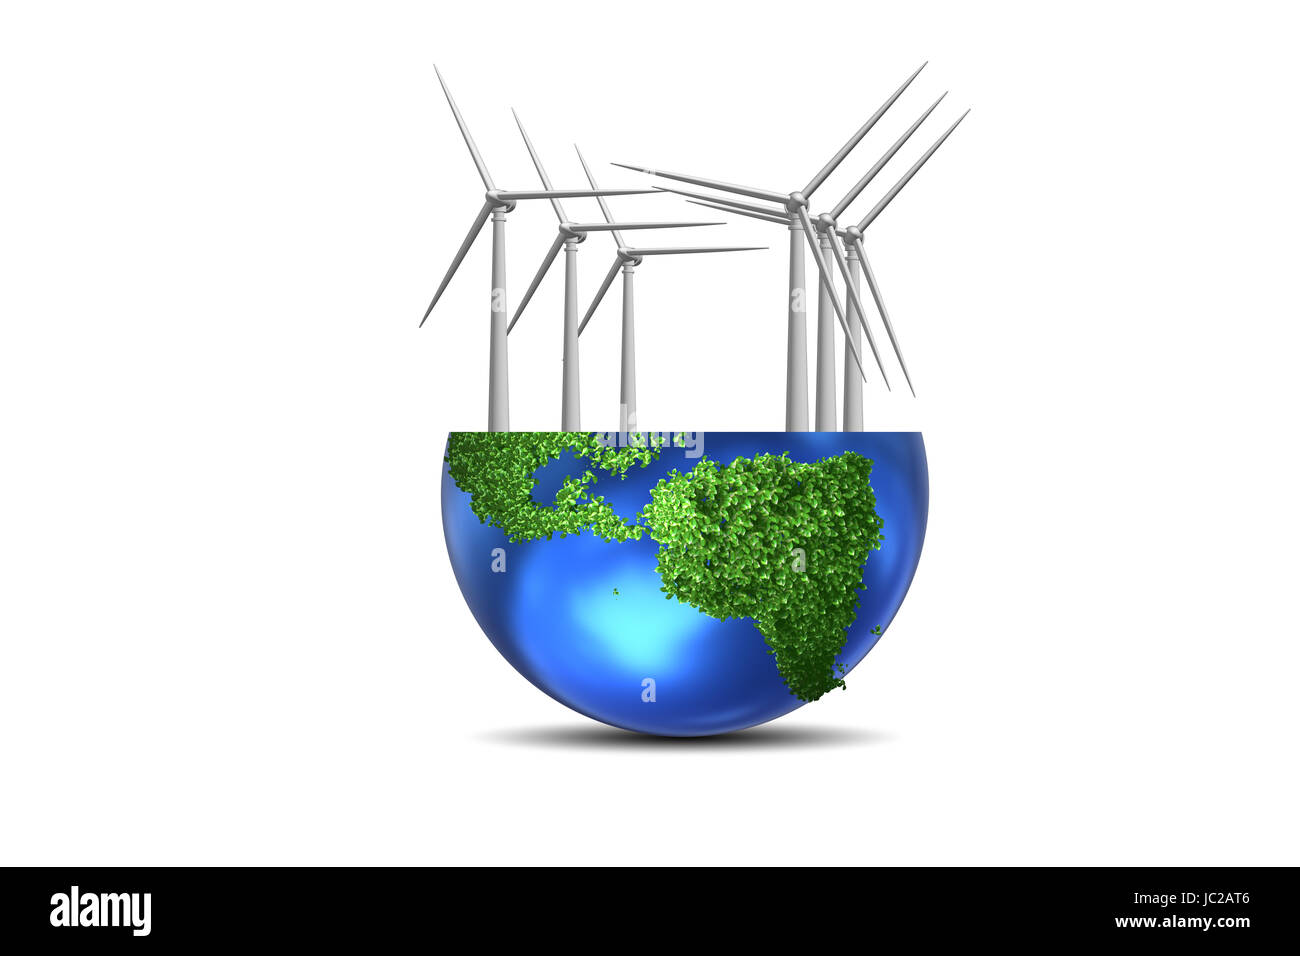 Concept of alternative energy with windmills - 3d rendering - Stock Image